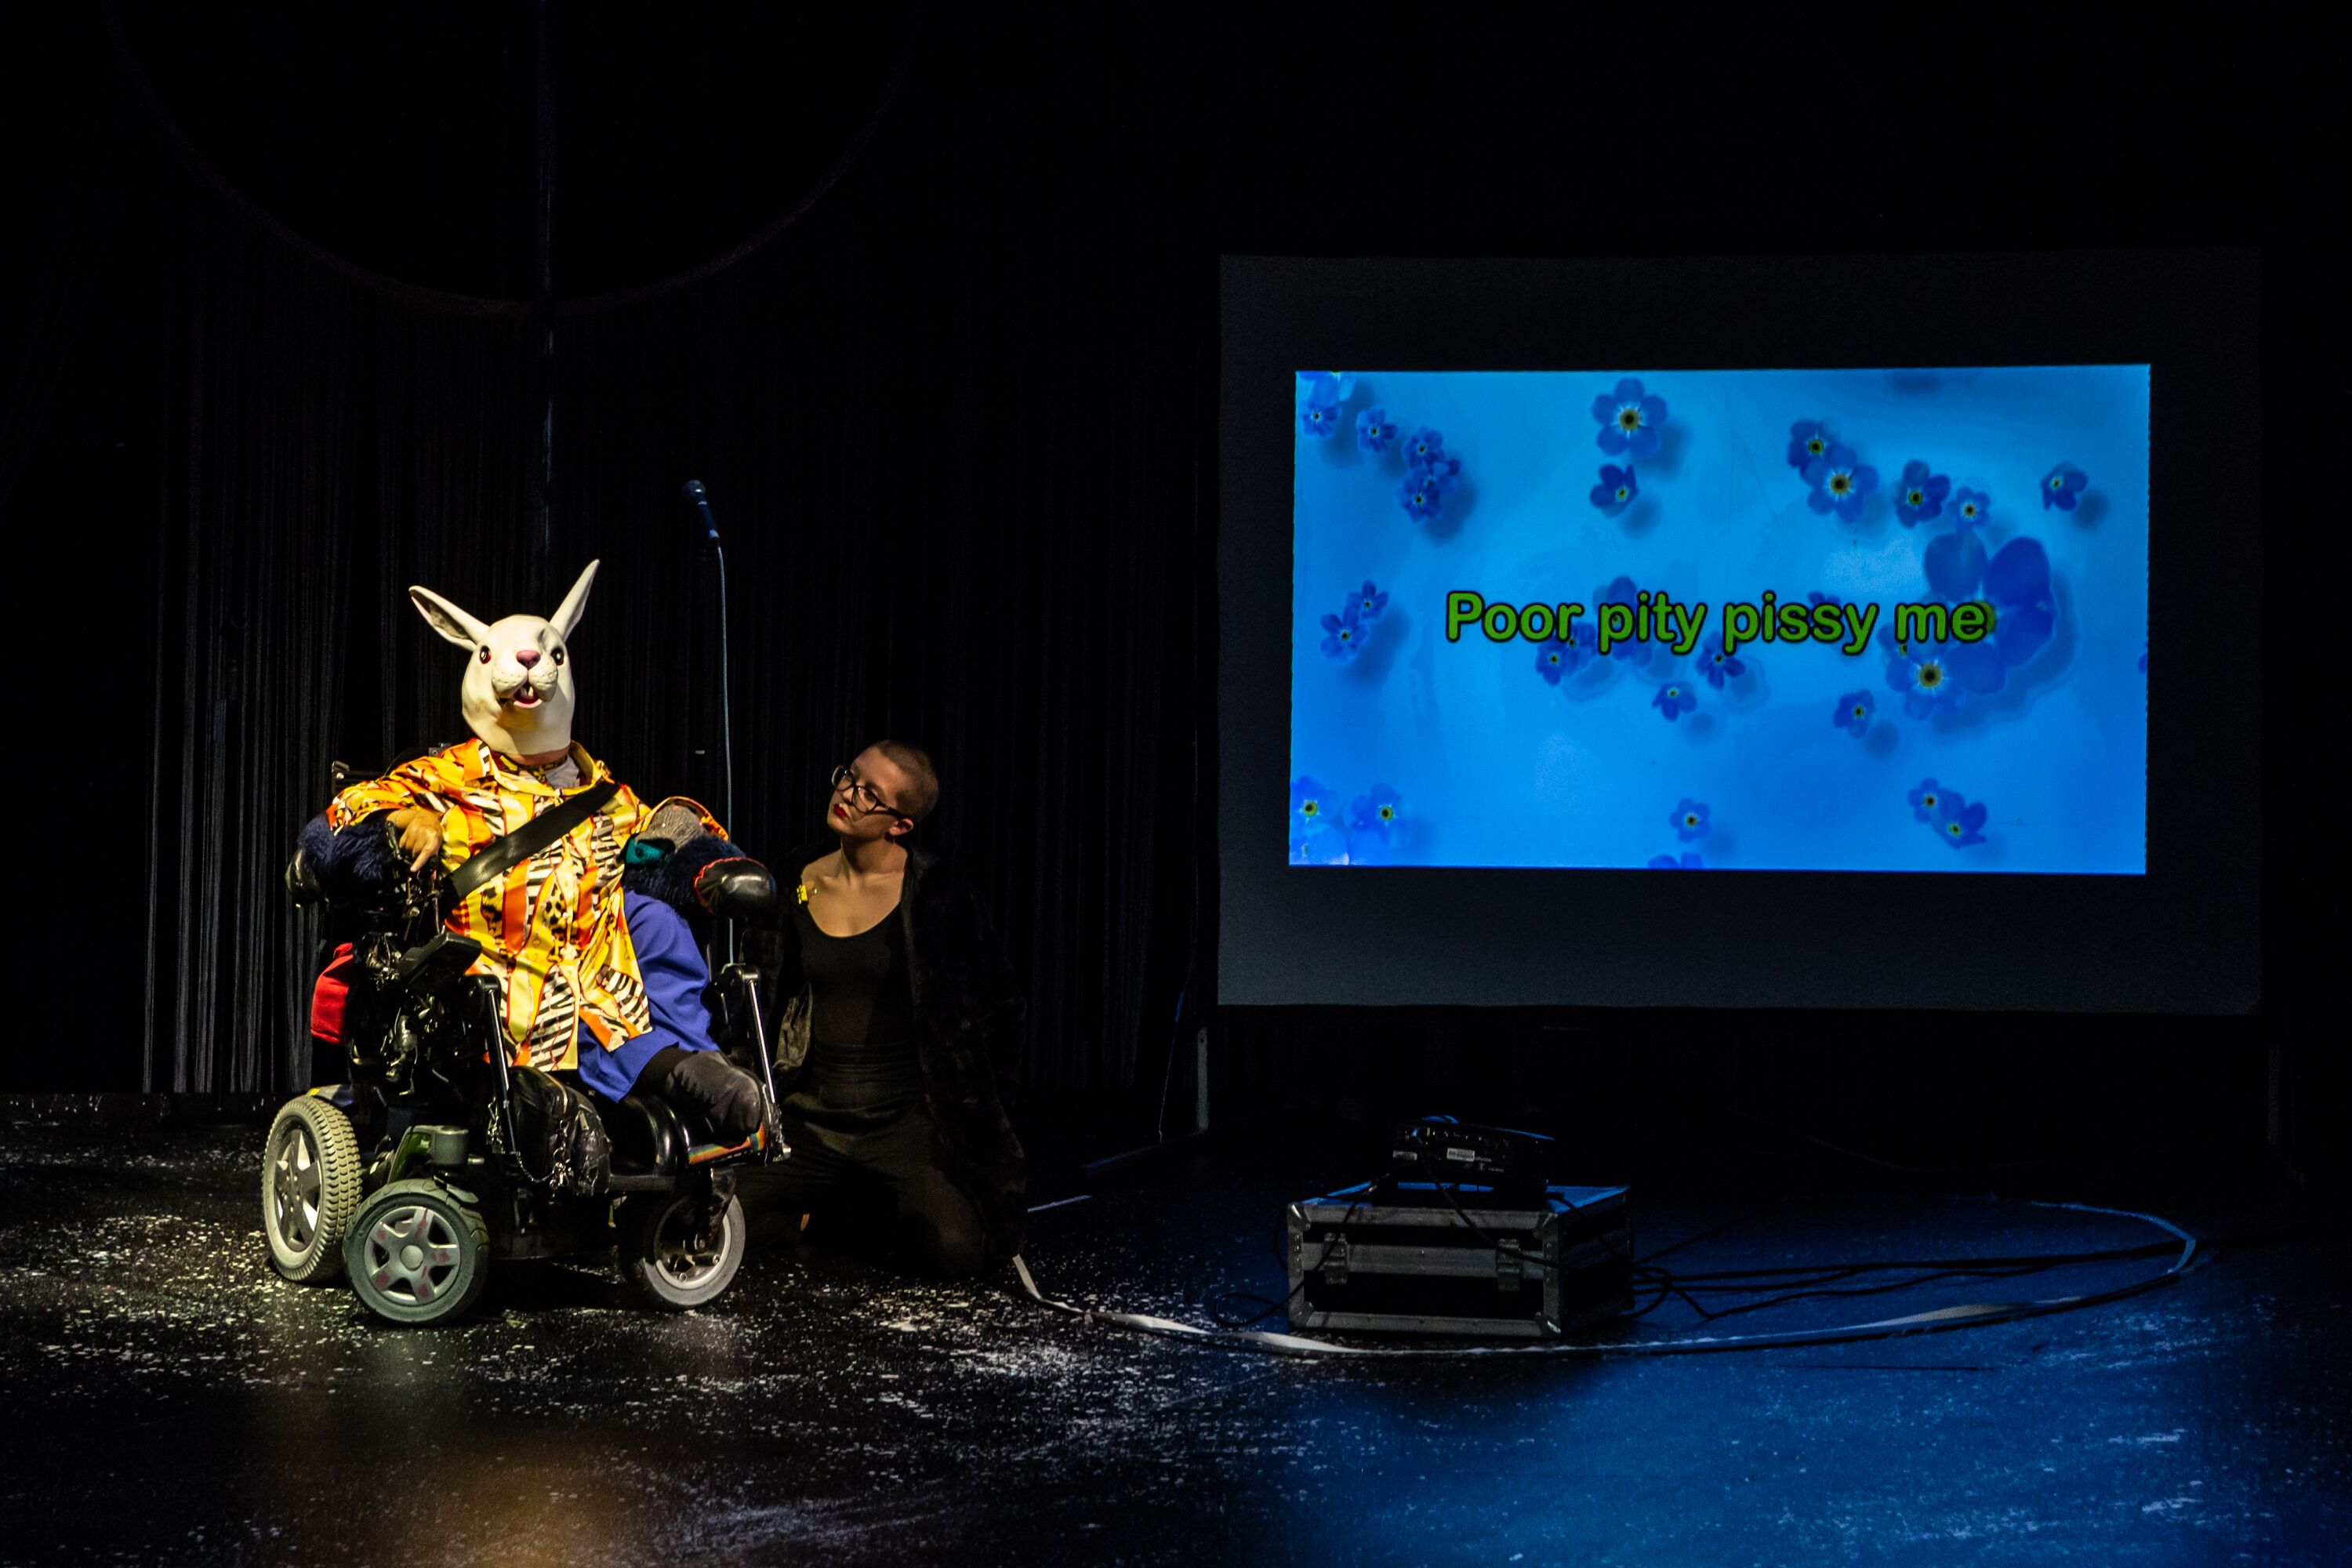 The artist is in a wheelchair and wearing a rabbit mask. To her side is her assistant. There is a screen to the right with the words 'poor pitty pissy me' projected.